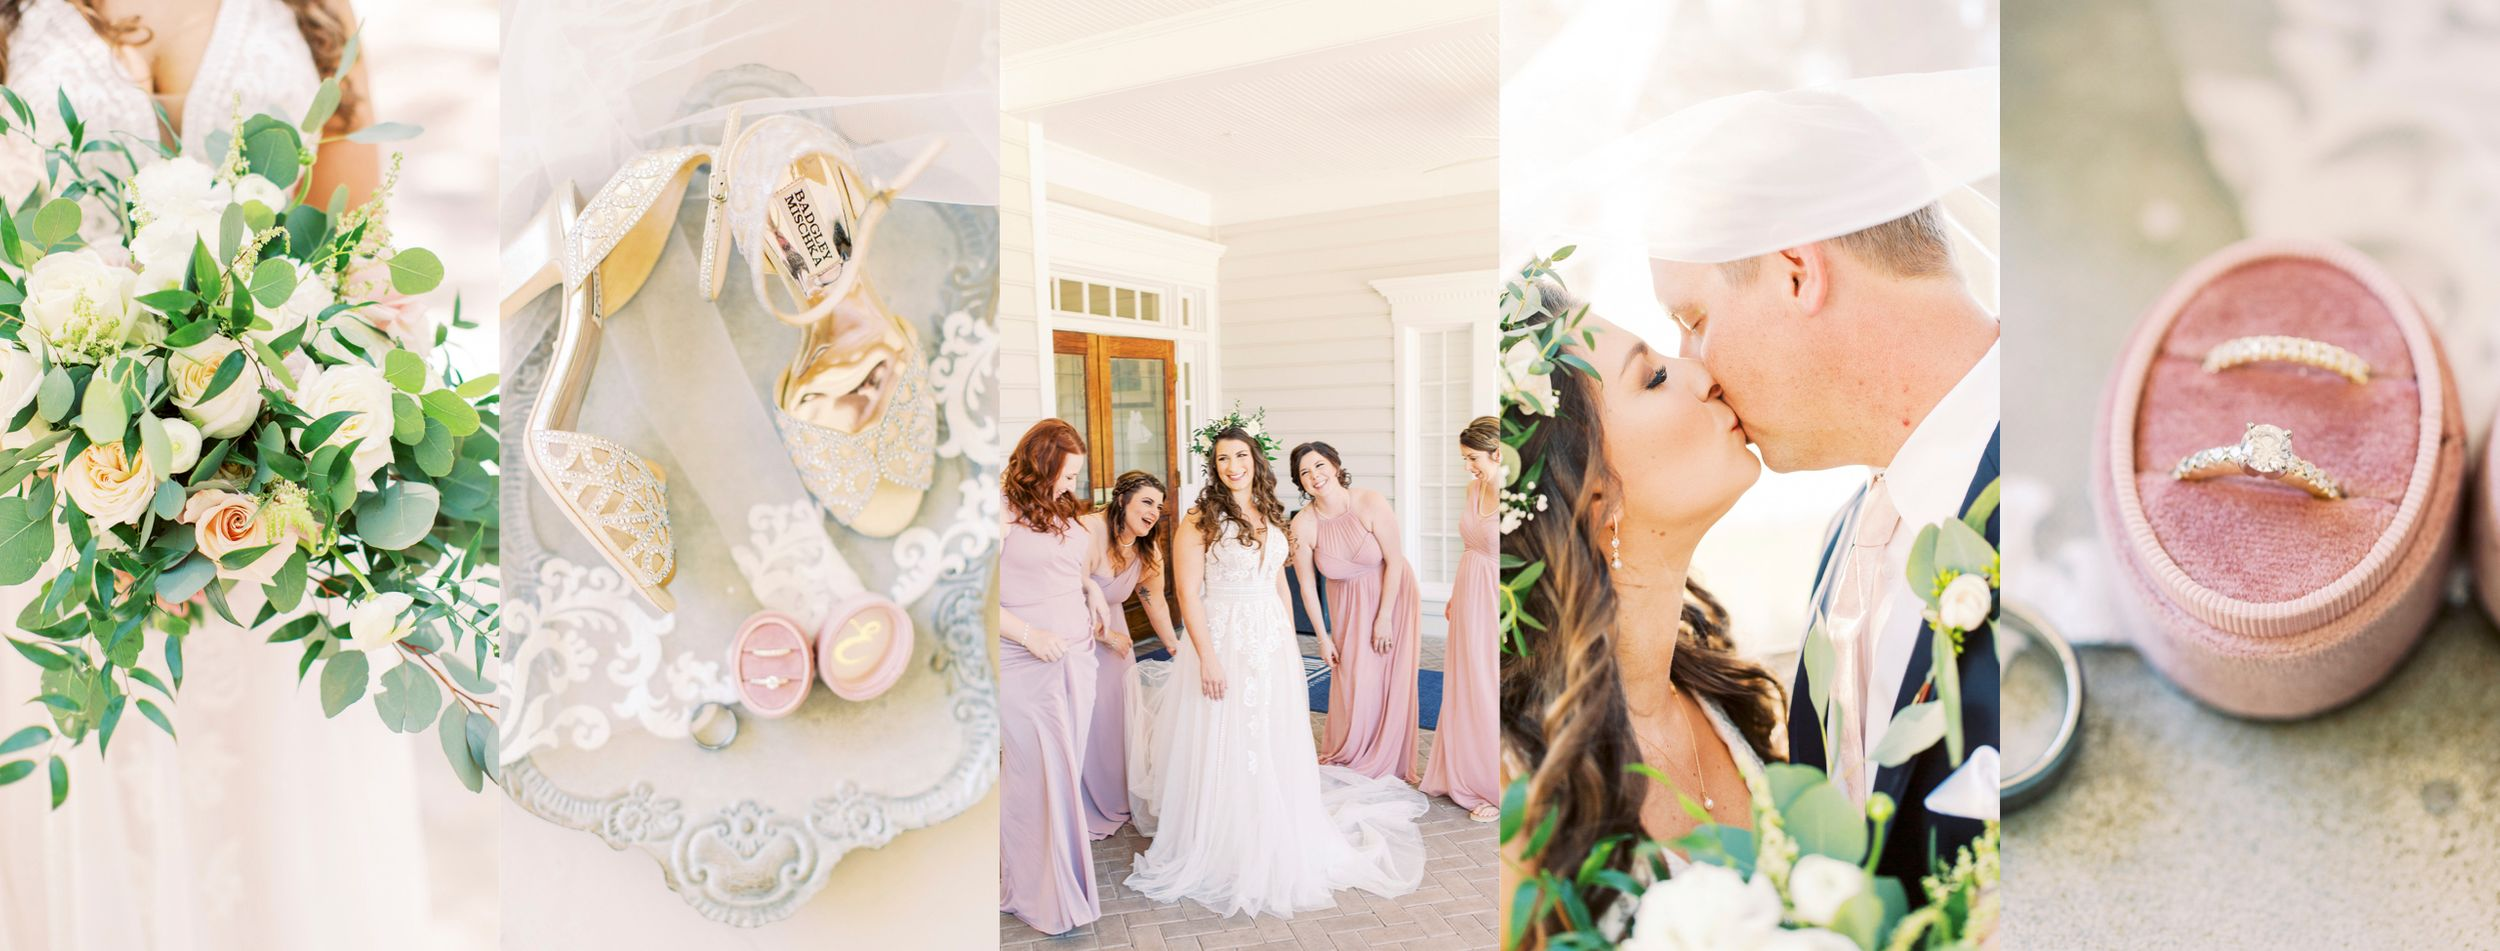 photos from chelsea and ben's savannah wedding at the plantation club in the landings